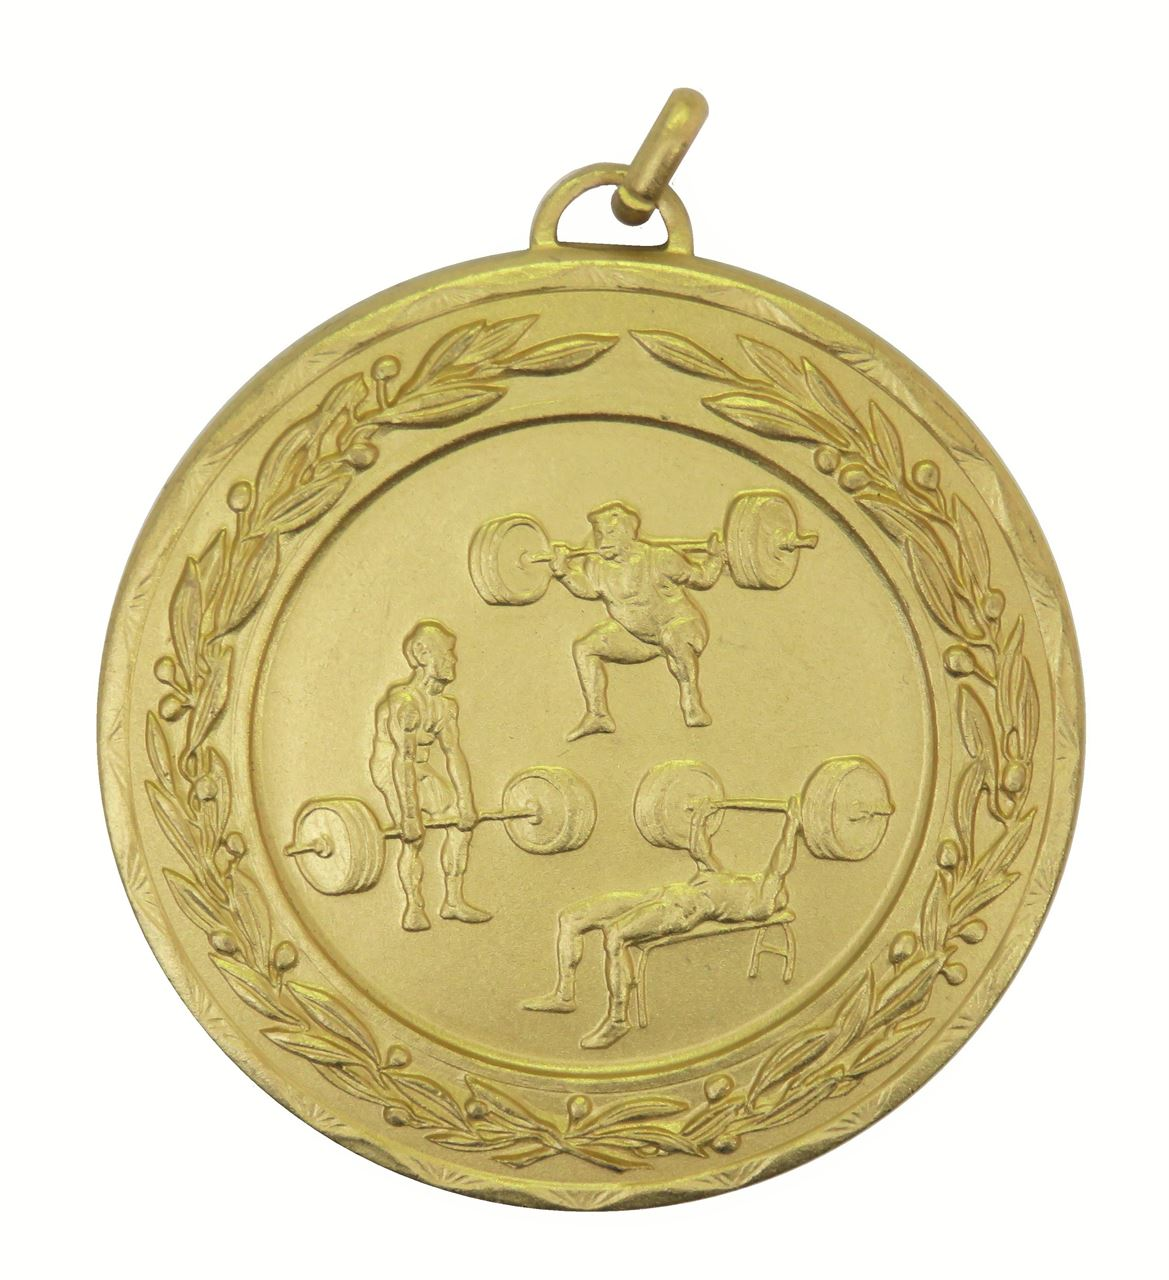 Gold Laurel Economy Weightlifting Medal (size: 50mm) - 4287E